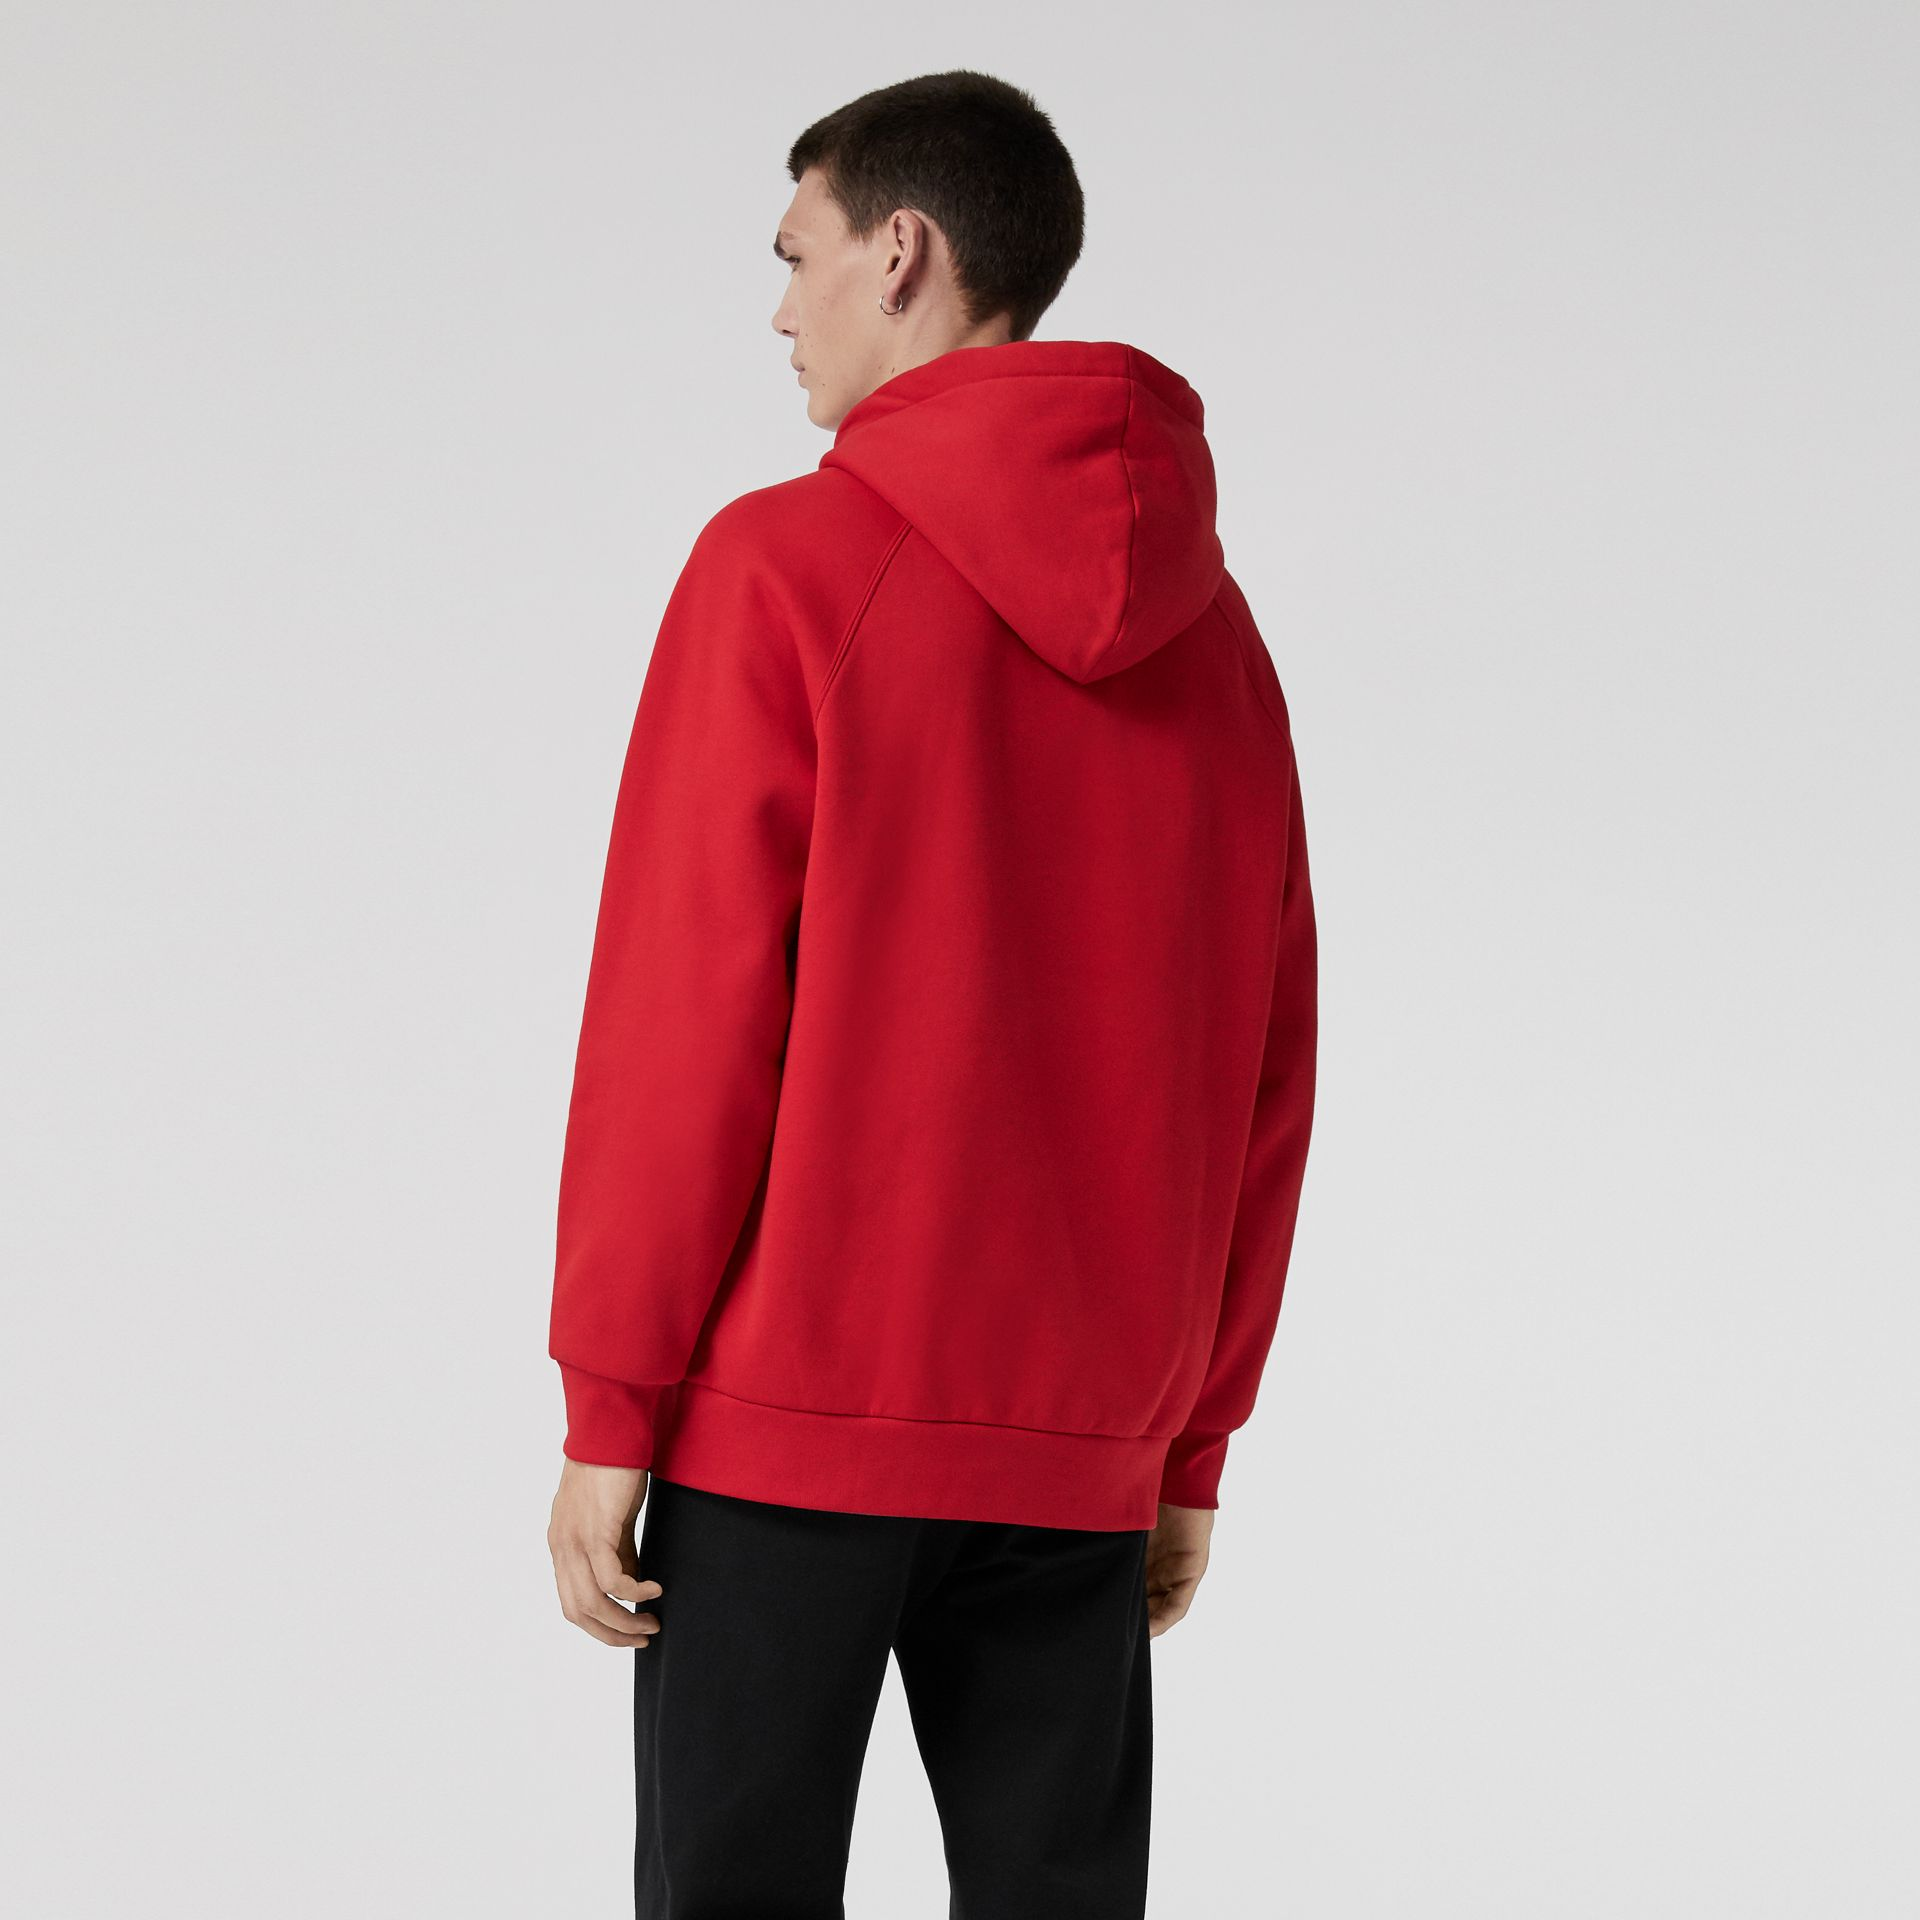 Embroidered Archive Logo Jersey Hoodie in Bright Red - Men | Burberry - gallery image 2